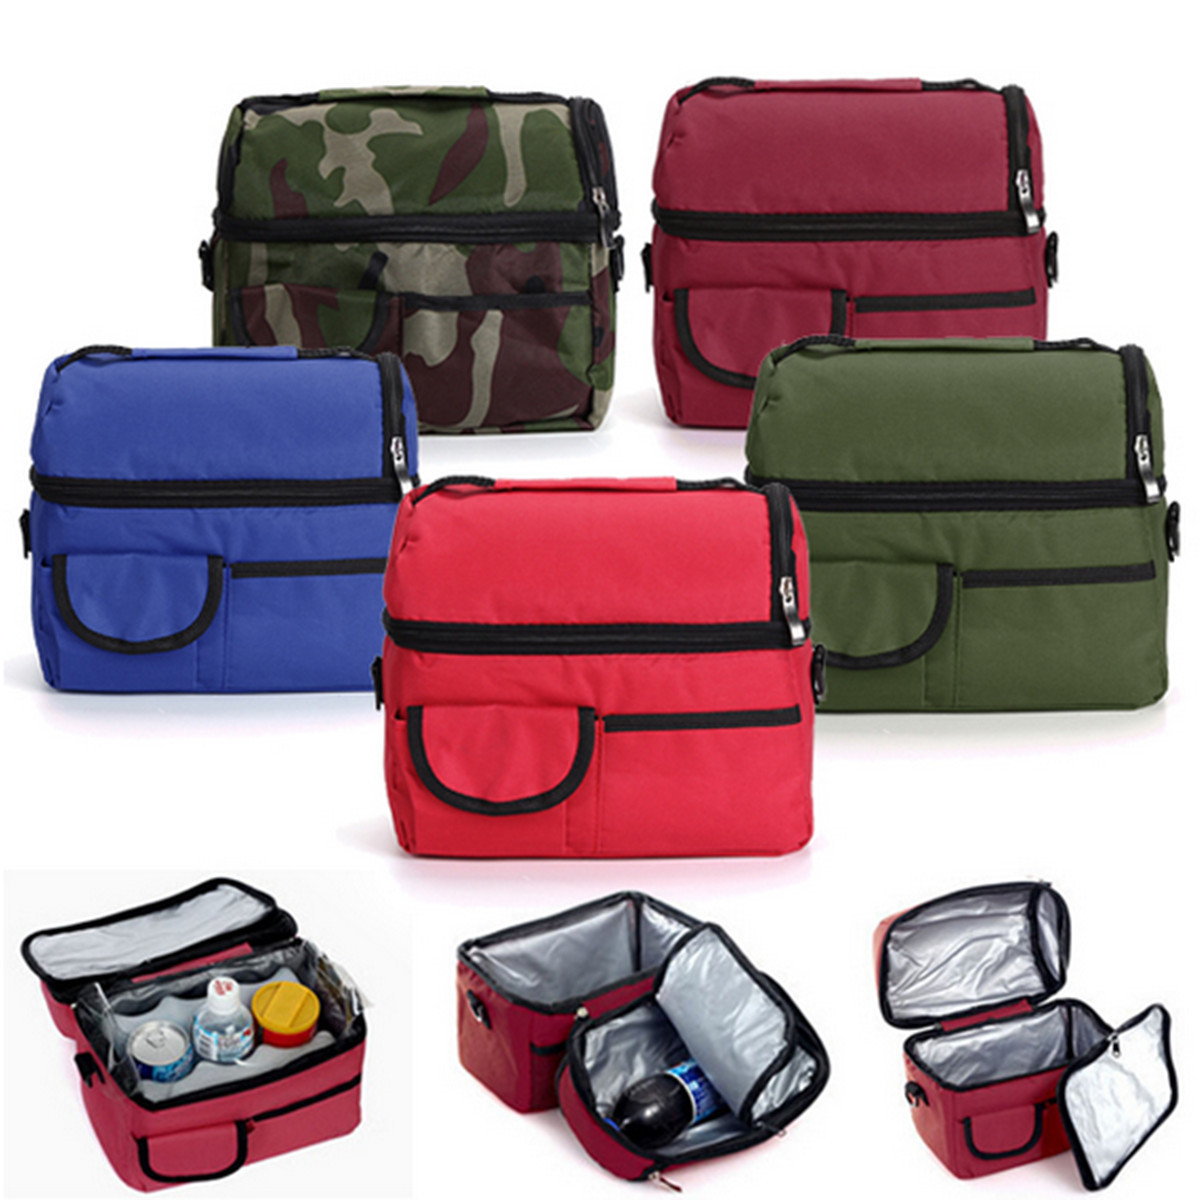 Ice Bag Lunch Box Lunch Picnic BBQ Camping Thermal Cooler Food Drink Cool Insulated Large Portable Bag Aluminum Foil Cooler Bag